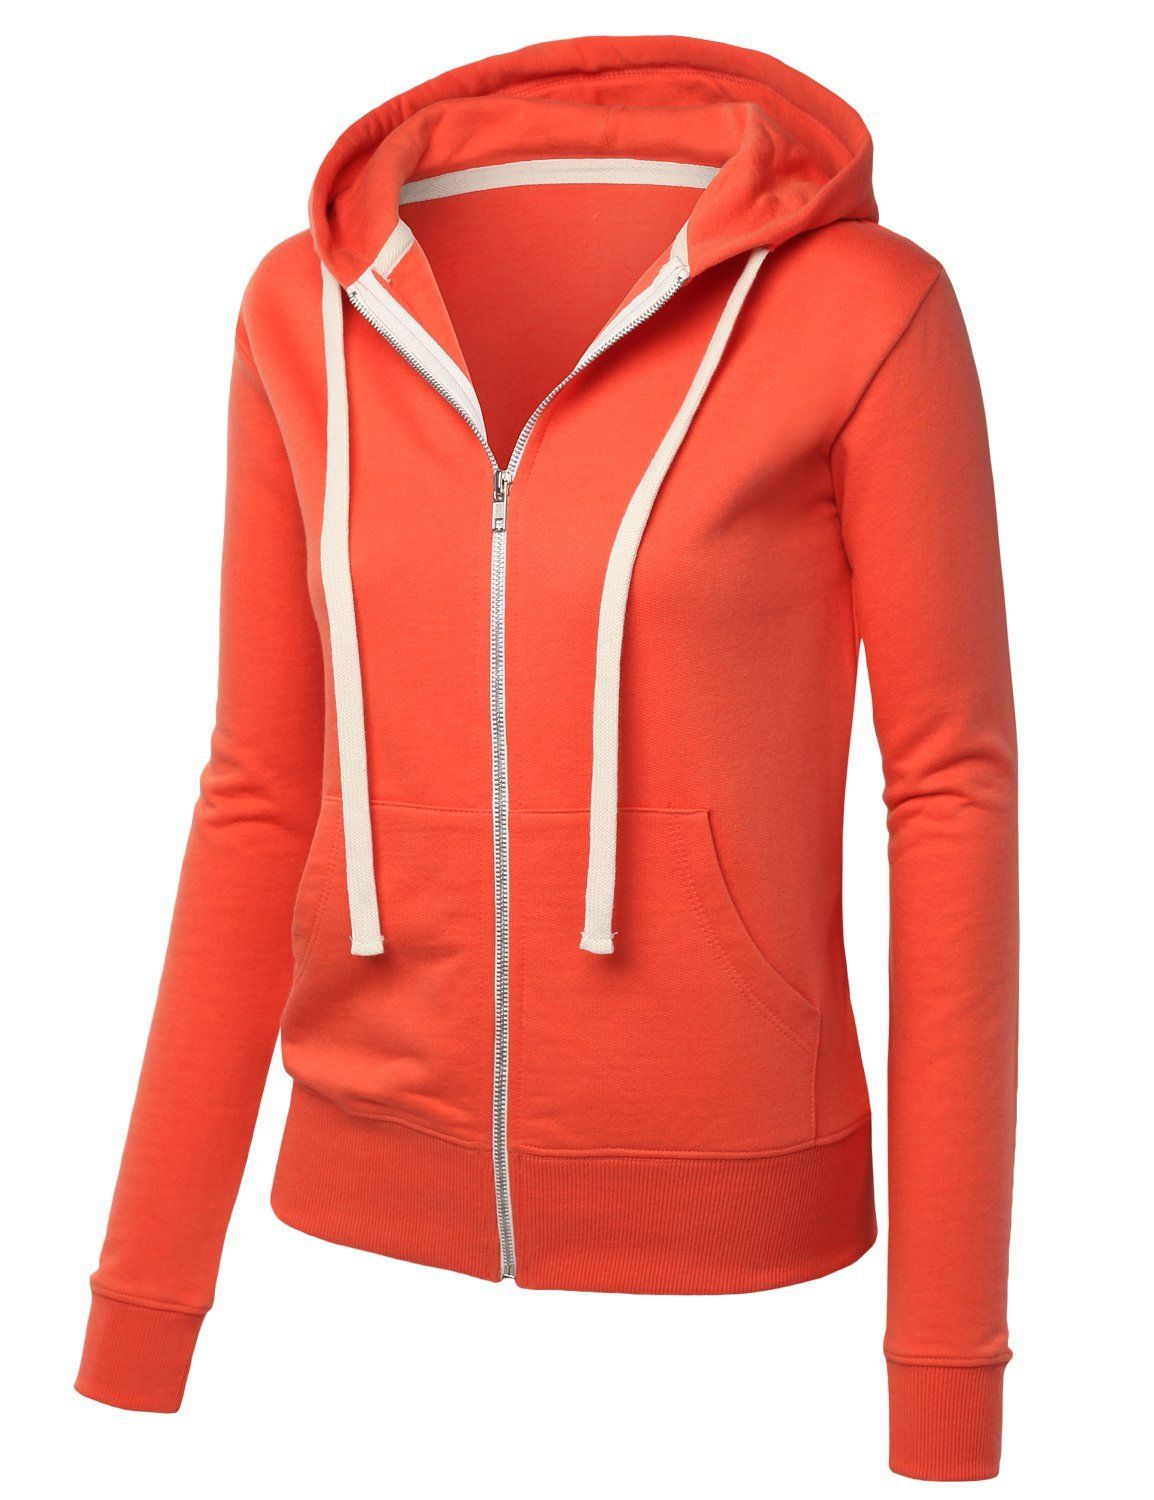 Womens premium active soft zip up fleece hoodie sweater jacket